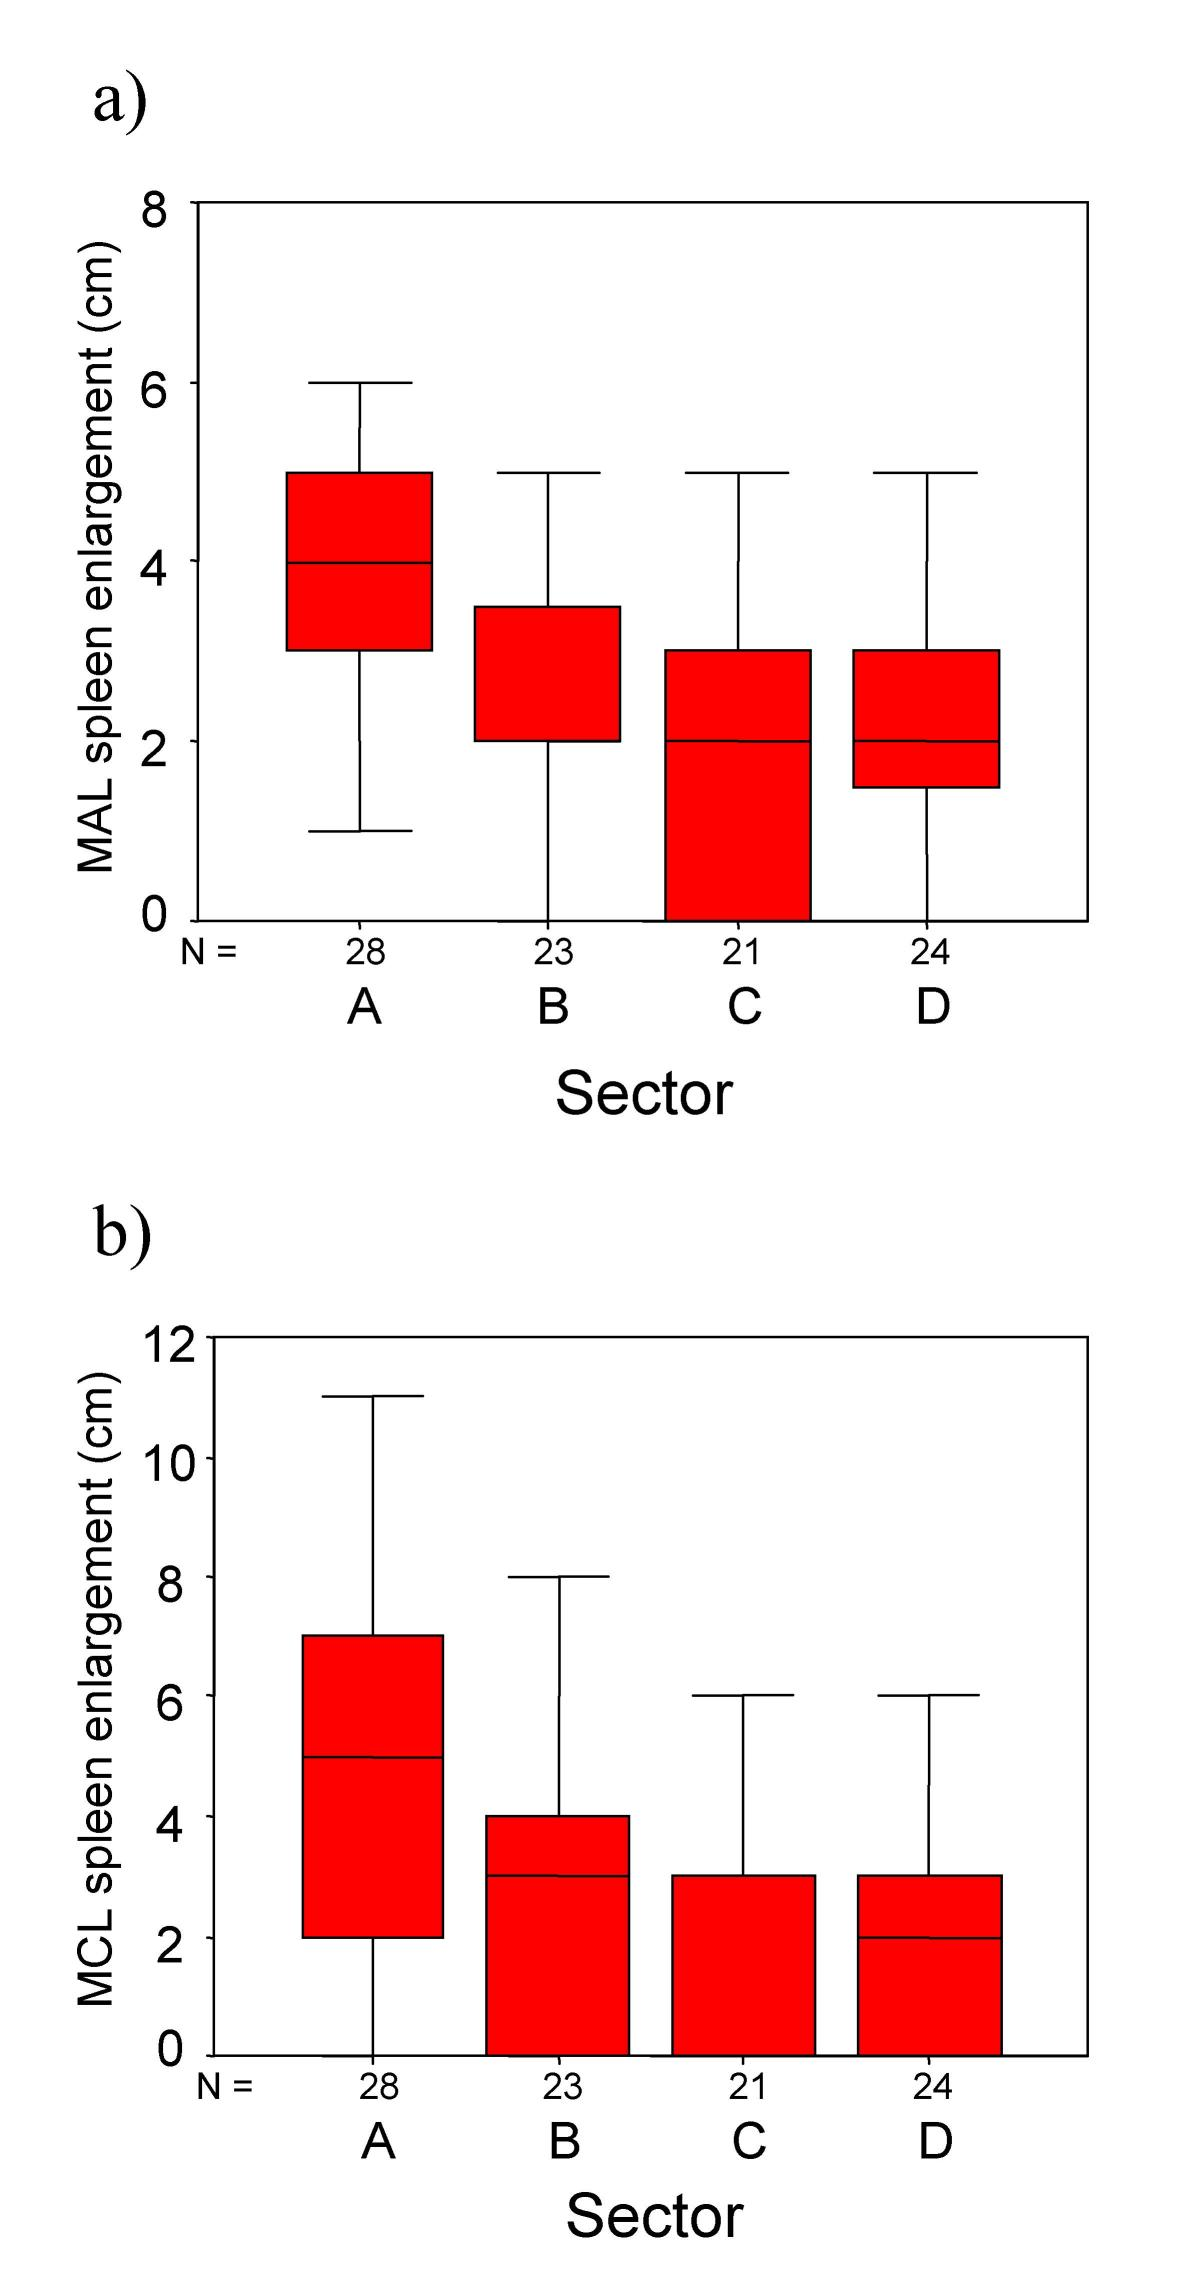 https://static-content.springer.com/image/art%3A10.1186%2F1471-2334-4-13/MediaObjects/12879_2003_Article_98_Fig5_HTML.jpg